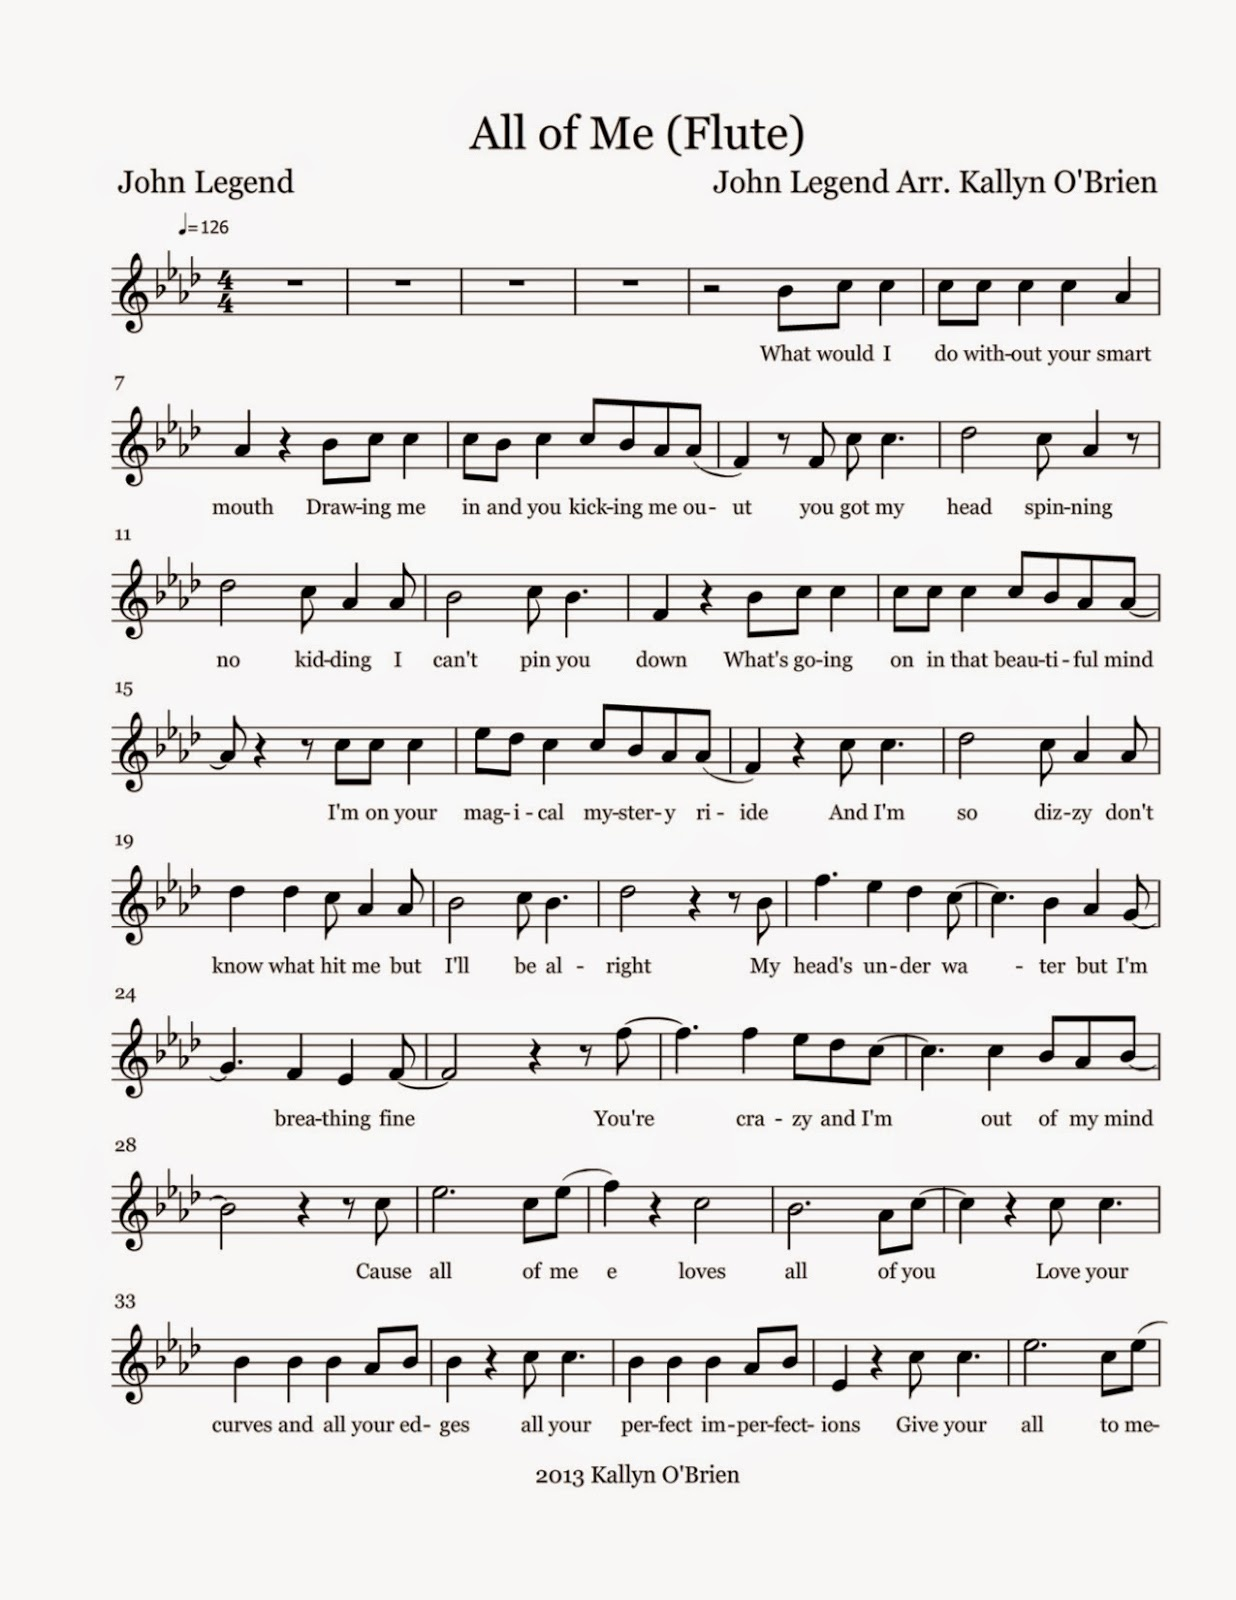 Flute Sheet Music: All Of Me - Sheet Music - Dynamite Piano Sheet Music Free Printable